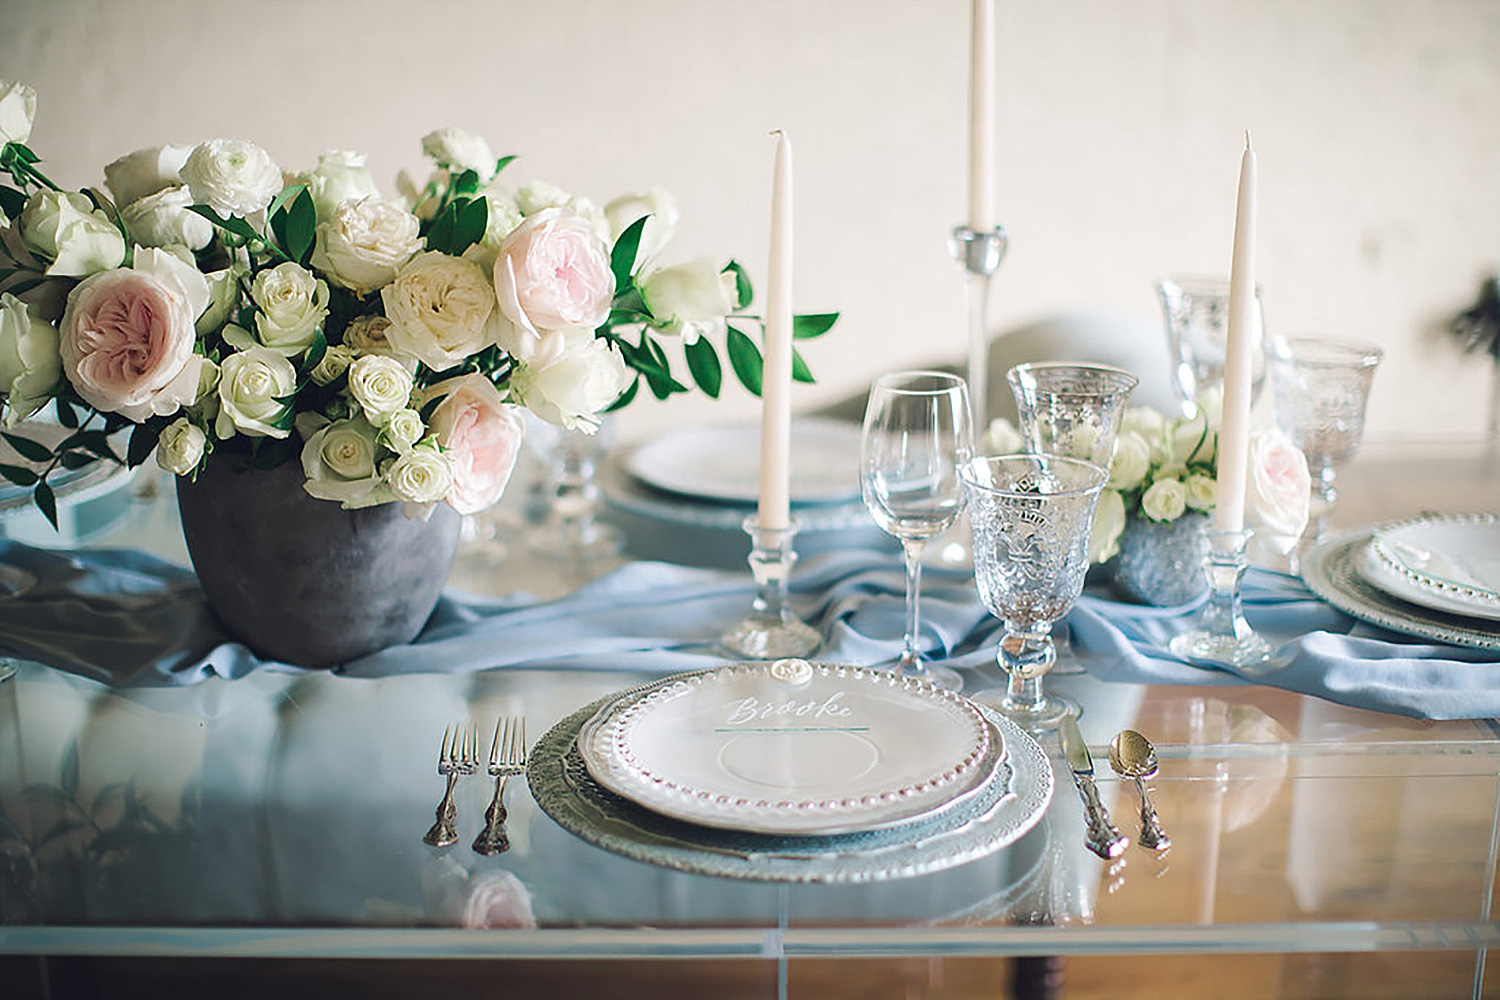 Dusty blue and white place setting with white tapered candles and white and blush flowers